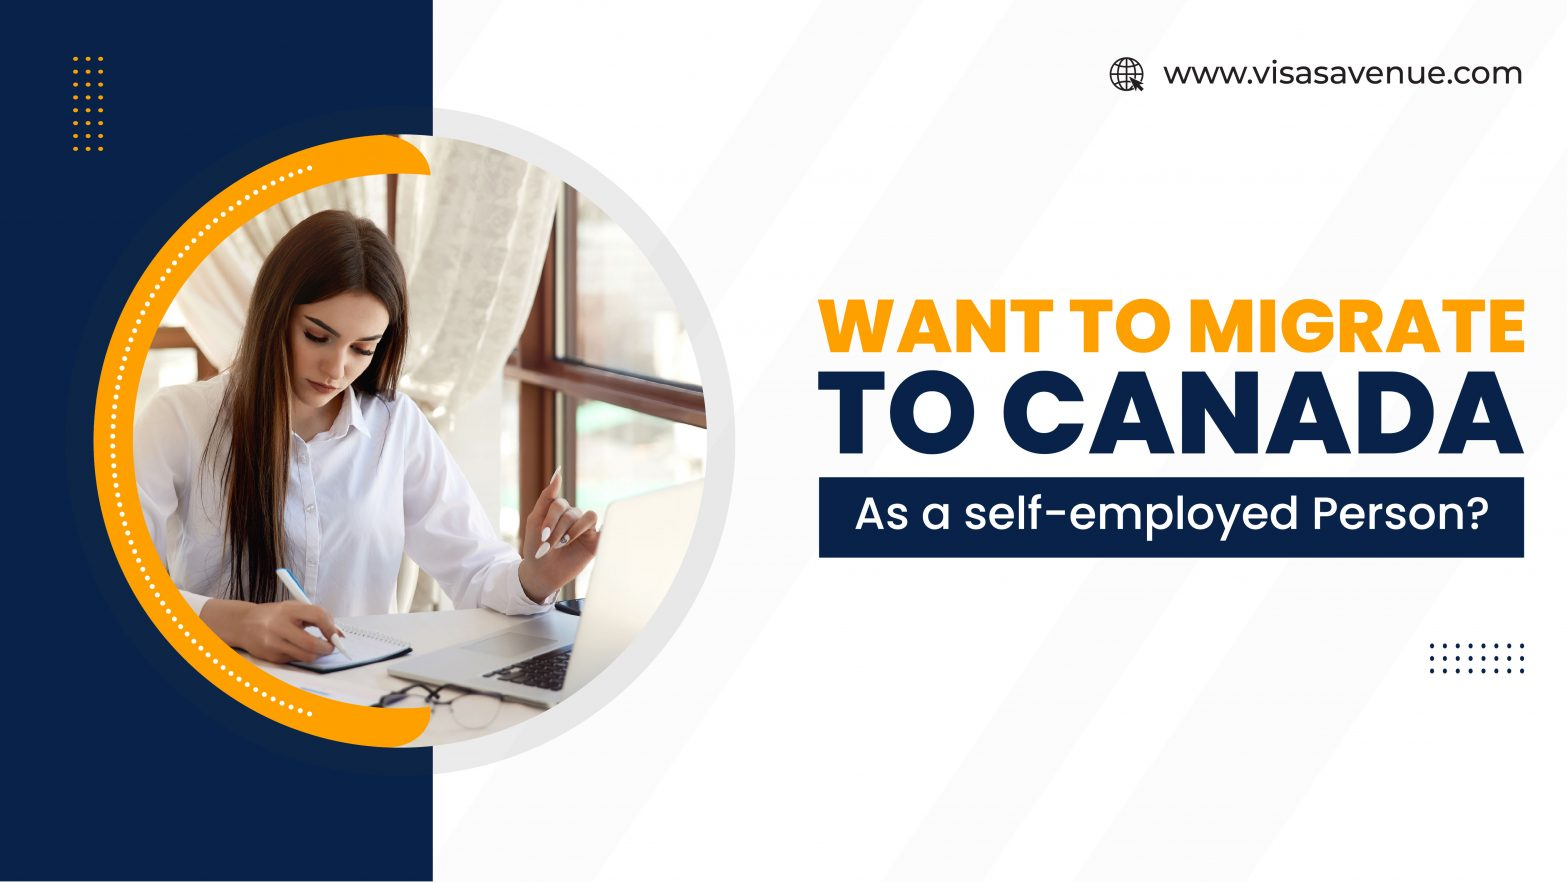 Want to migrate to Canada as a self-employed person?